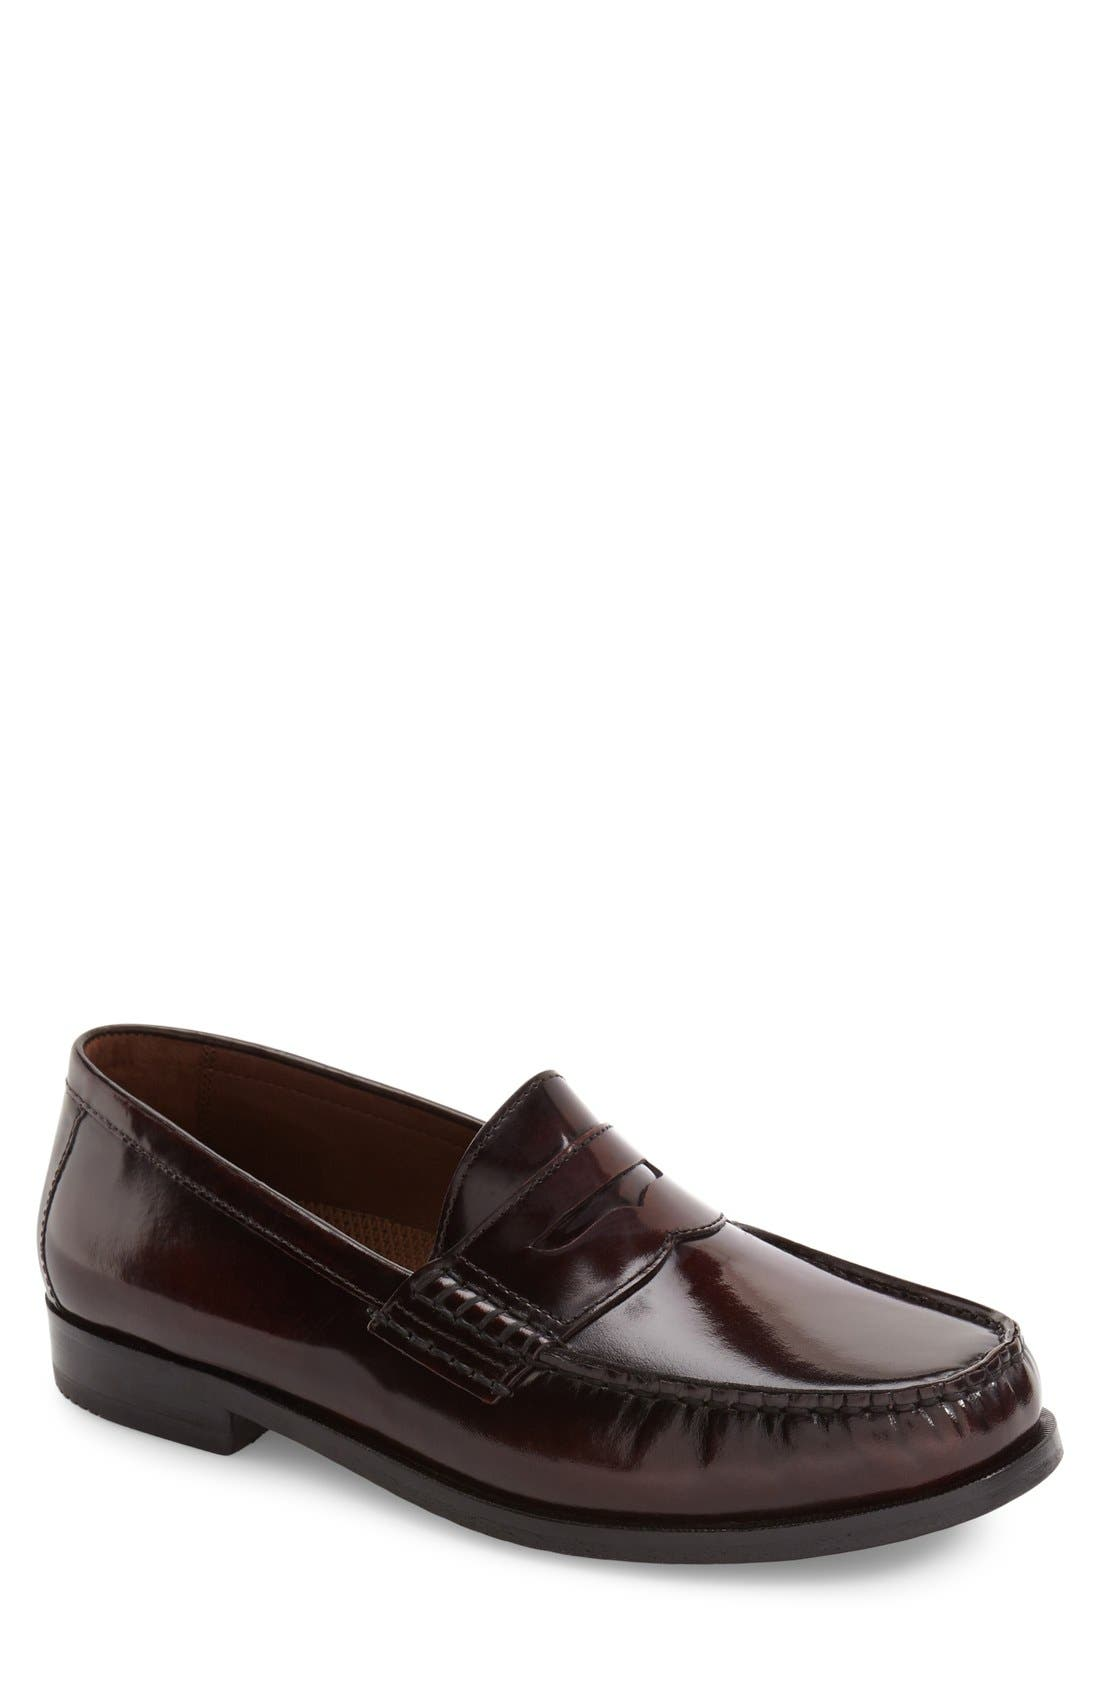 Main Image - Johnston & Murphy Pannell Penny Loafer (Men)